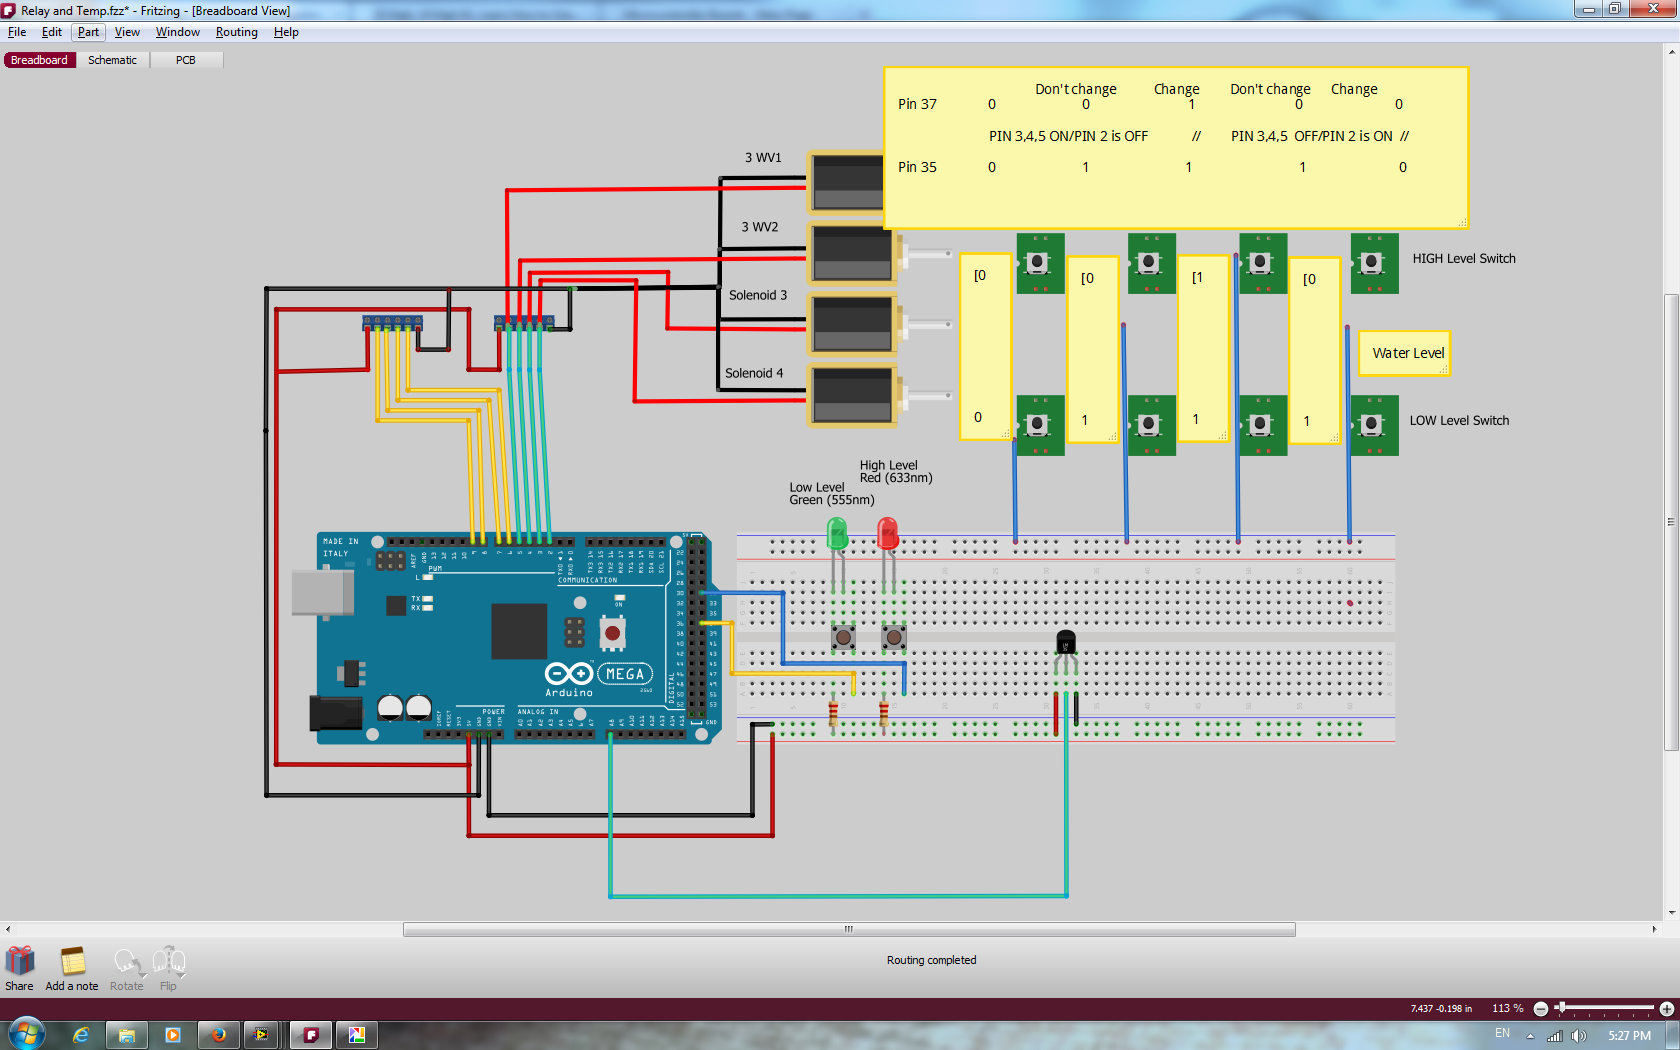 Atlas Switch Wiring Diagram Arduino Detailed Diagrams Turn Out Experimental Aquaponics With And Multiple Sensors Page 3 Blue Point Machine